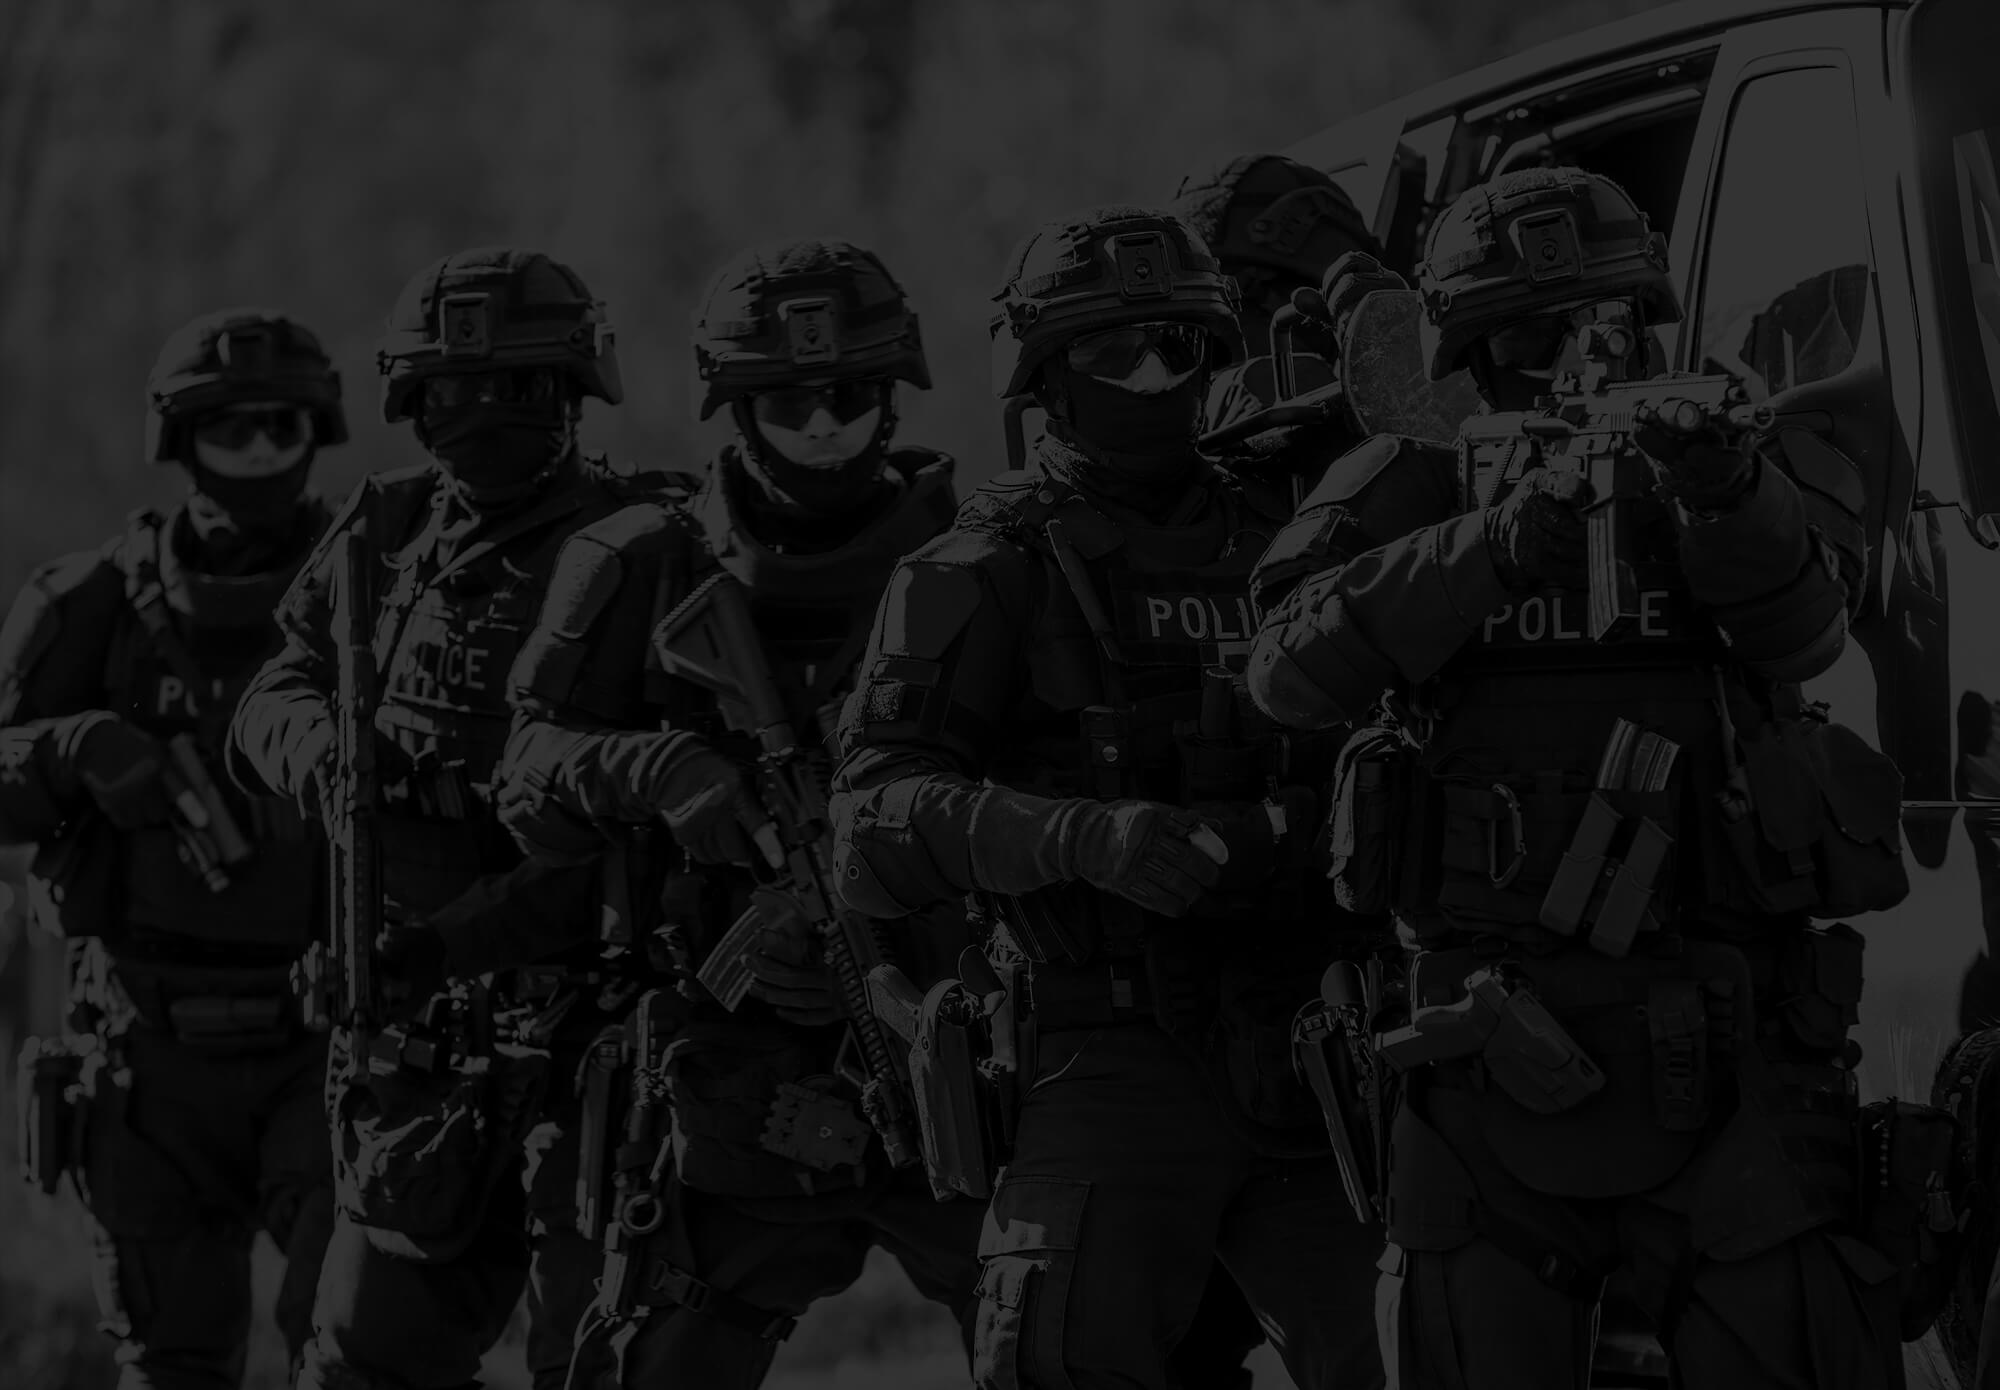 Krausko Police Tactical Gear & Equipment - Military Technology, K9